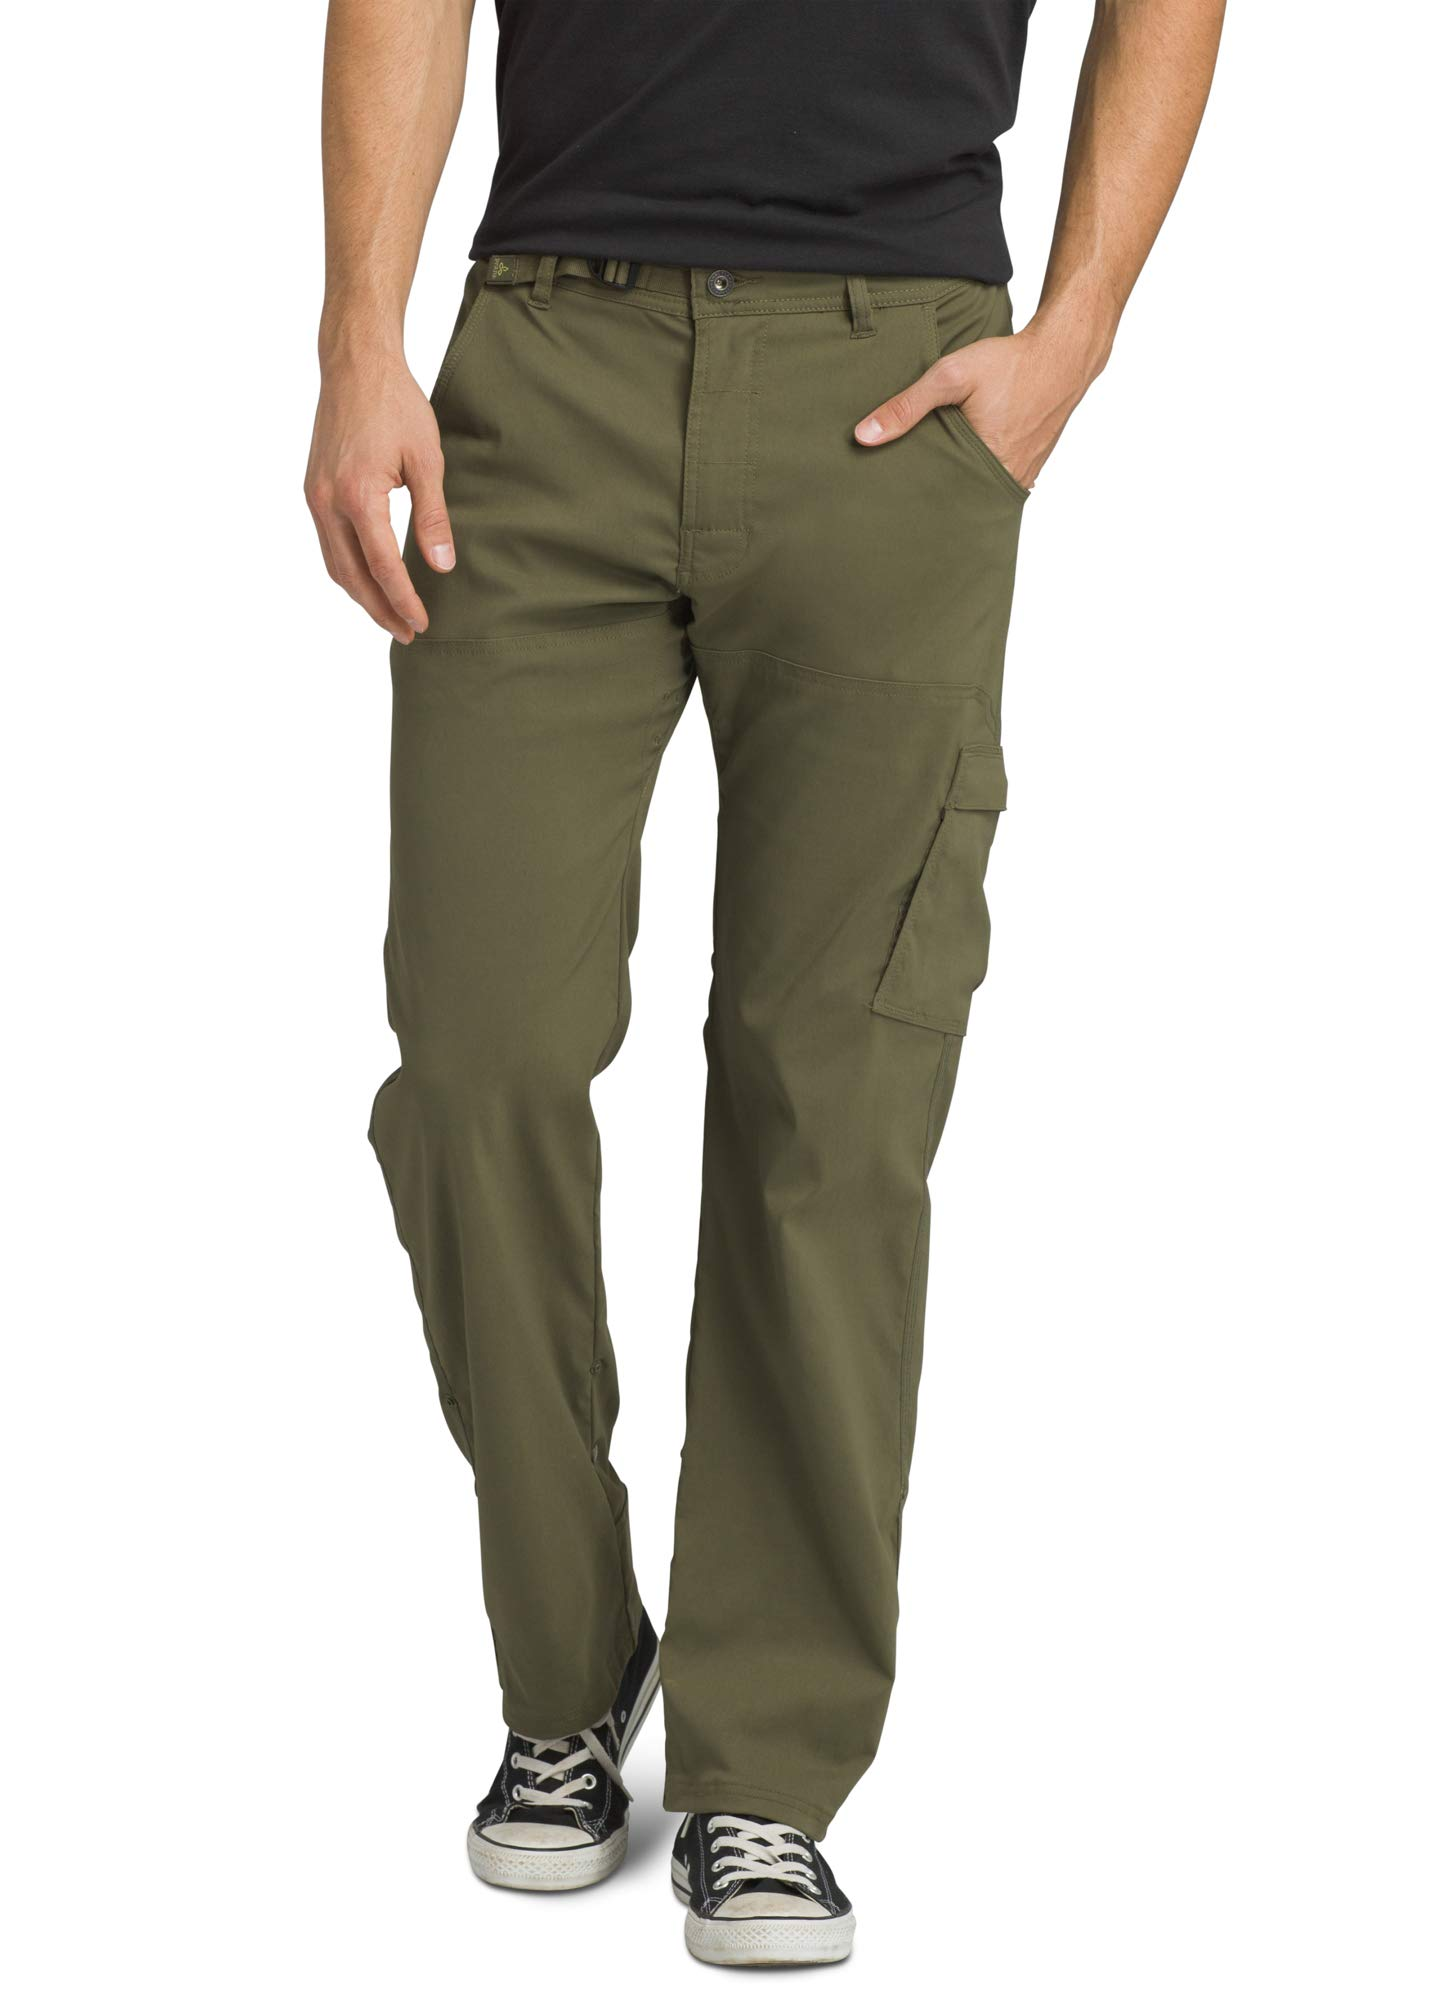 prAna - Men's Stretch Zion Lightweight, Durable, Water Repellent Pants for Hiking and Everyday Wear, 32'' Inseam, Cargo Green, 34 by prAna